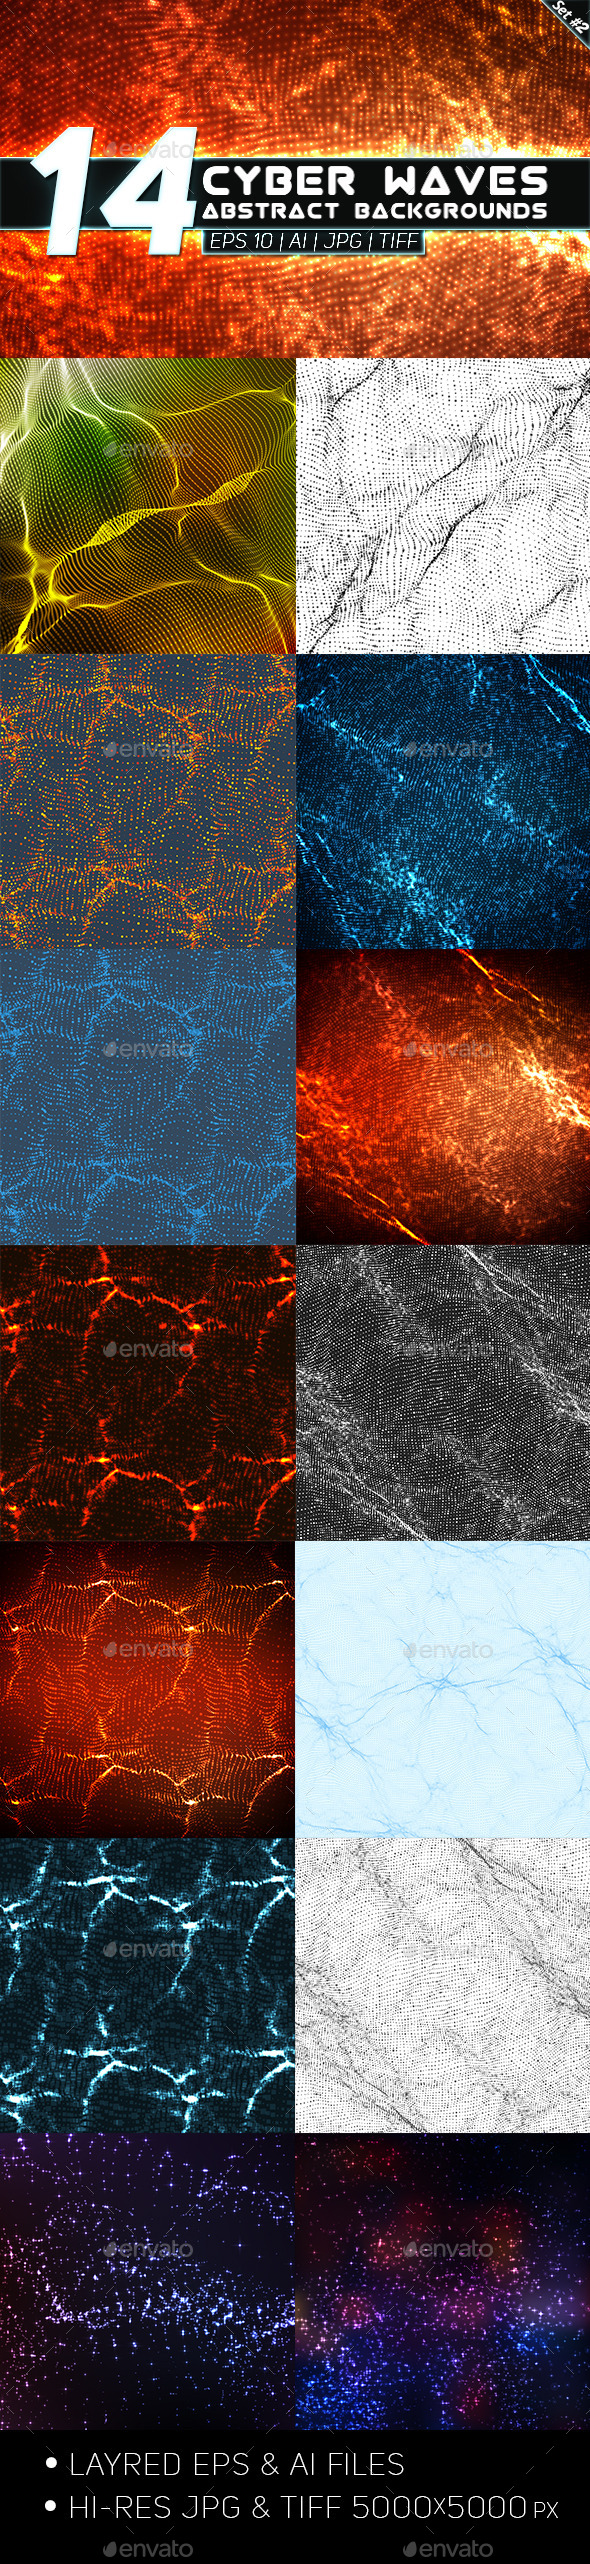 GraphicRiver 14 Abstract Cyber Waves Backgrounds Set 2 9177433